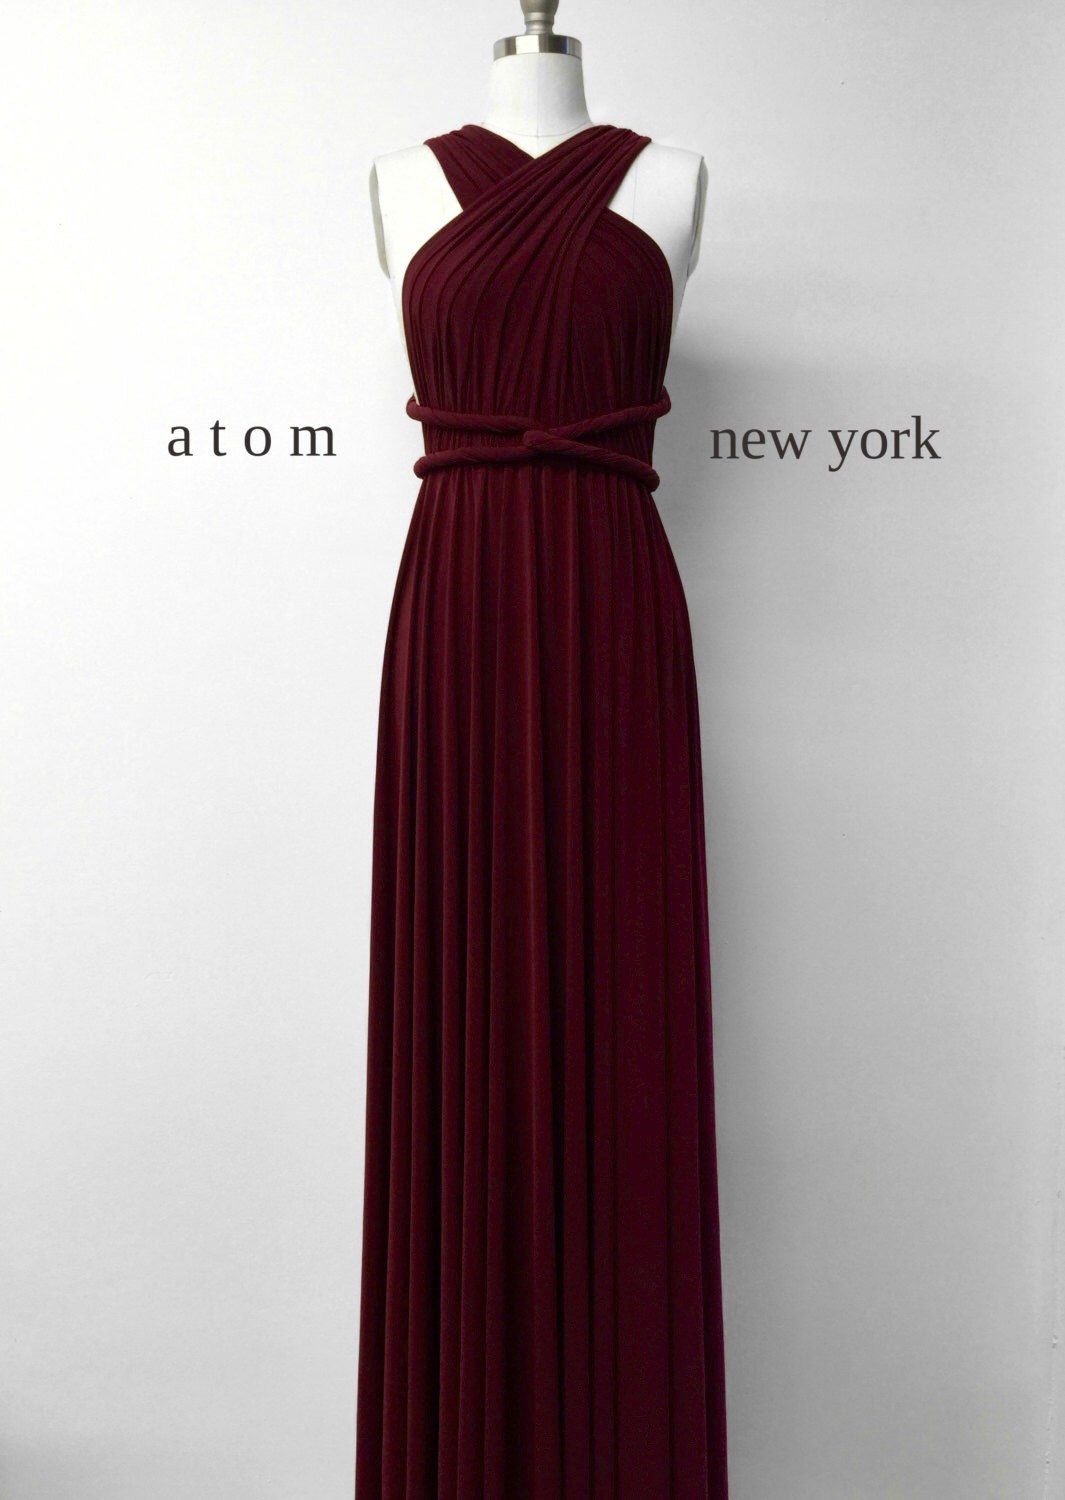 Burgundy Wine Red Long Floor Length Ball Gown Infinity Dress Convertible Formal Multiway Wrap Dress Bridesmaid Dress Evening Christmas Party Wrap Dress Bridesmaid Wine Bridesmaid Dresses Infinity Dress [ 1500 x 1065 Pixel ]